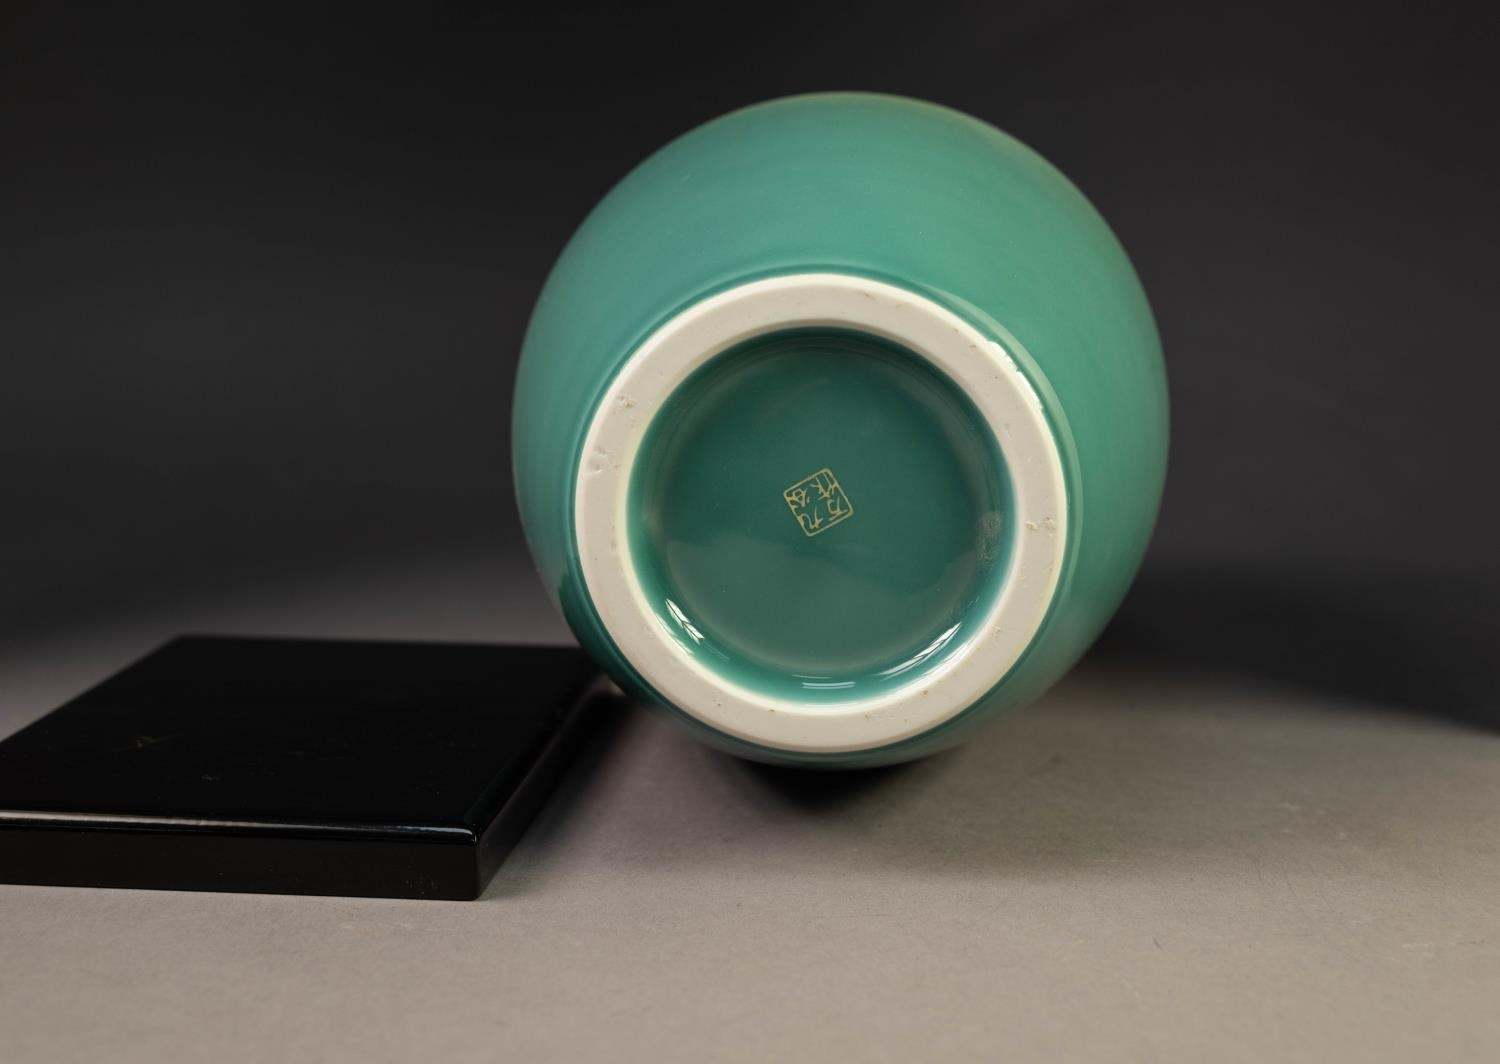 MODERN JAPANESE KUTANI WARE PORCELAIN VASE, of ovoid form, decorated in sprayed shades of green - Image 4 of 5